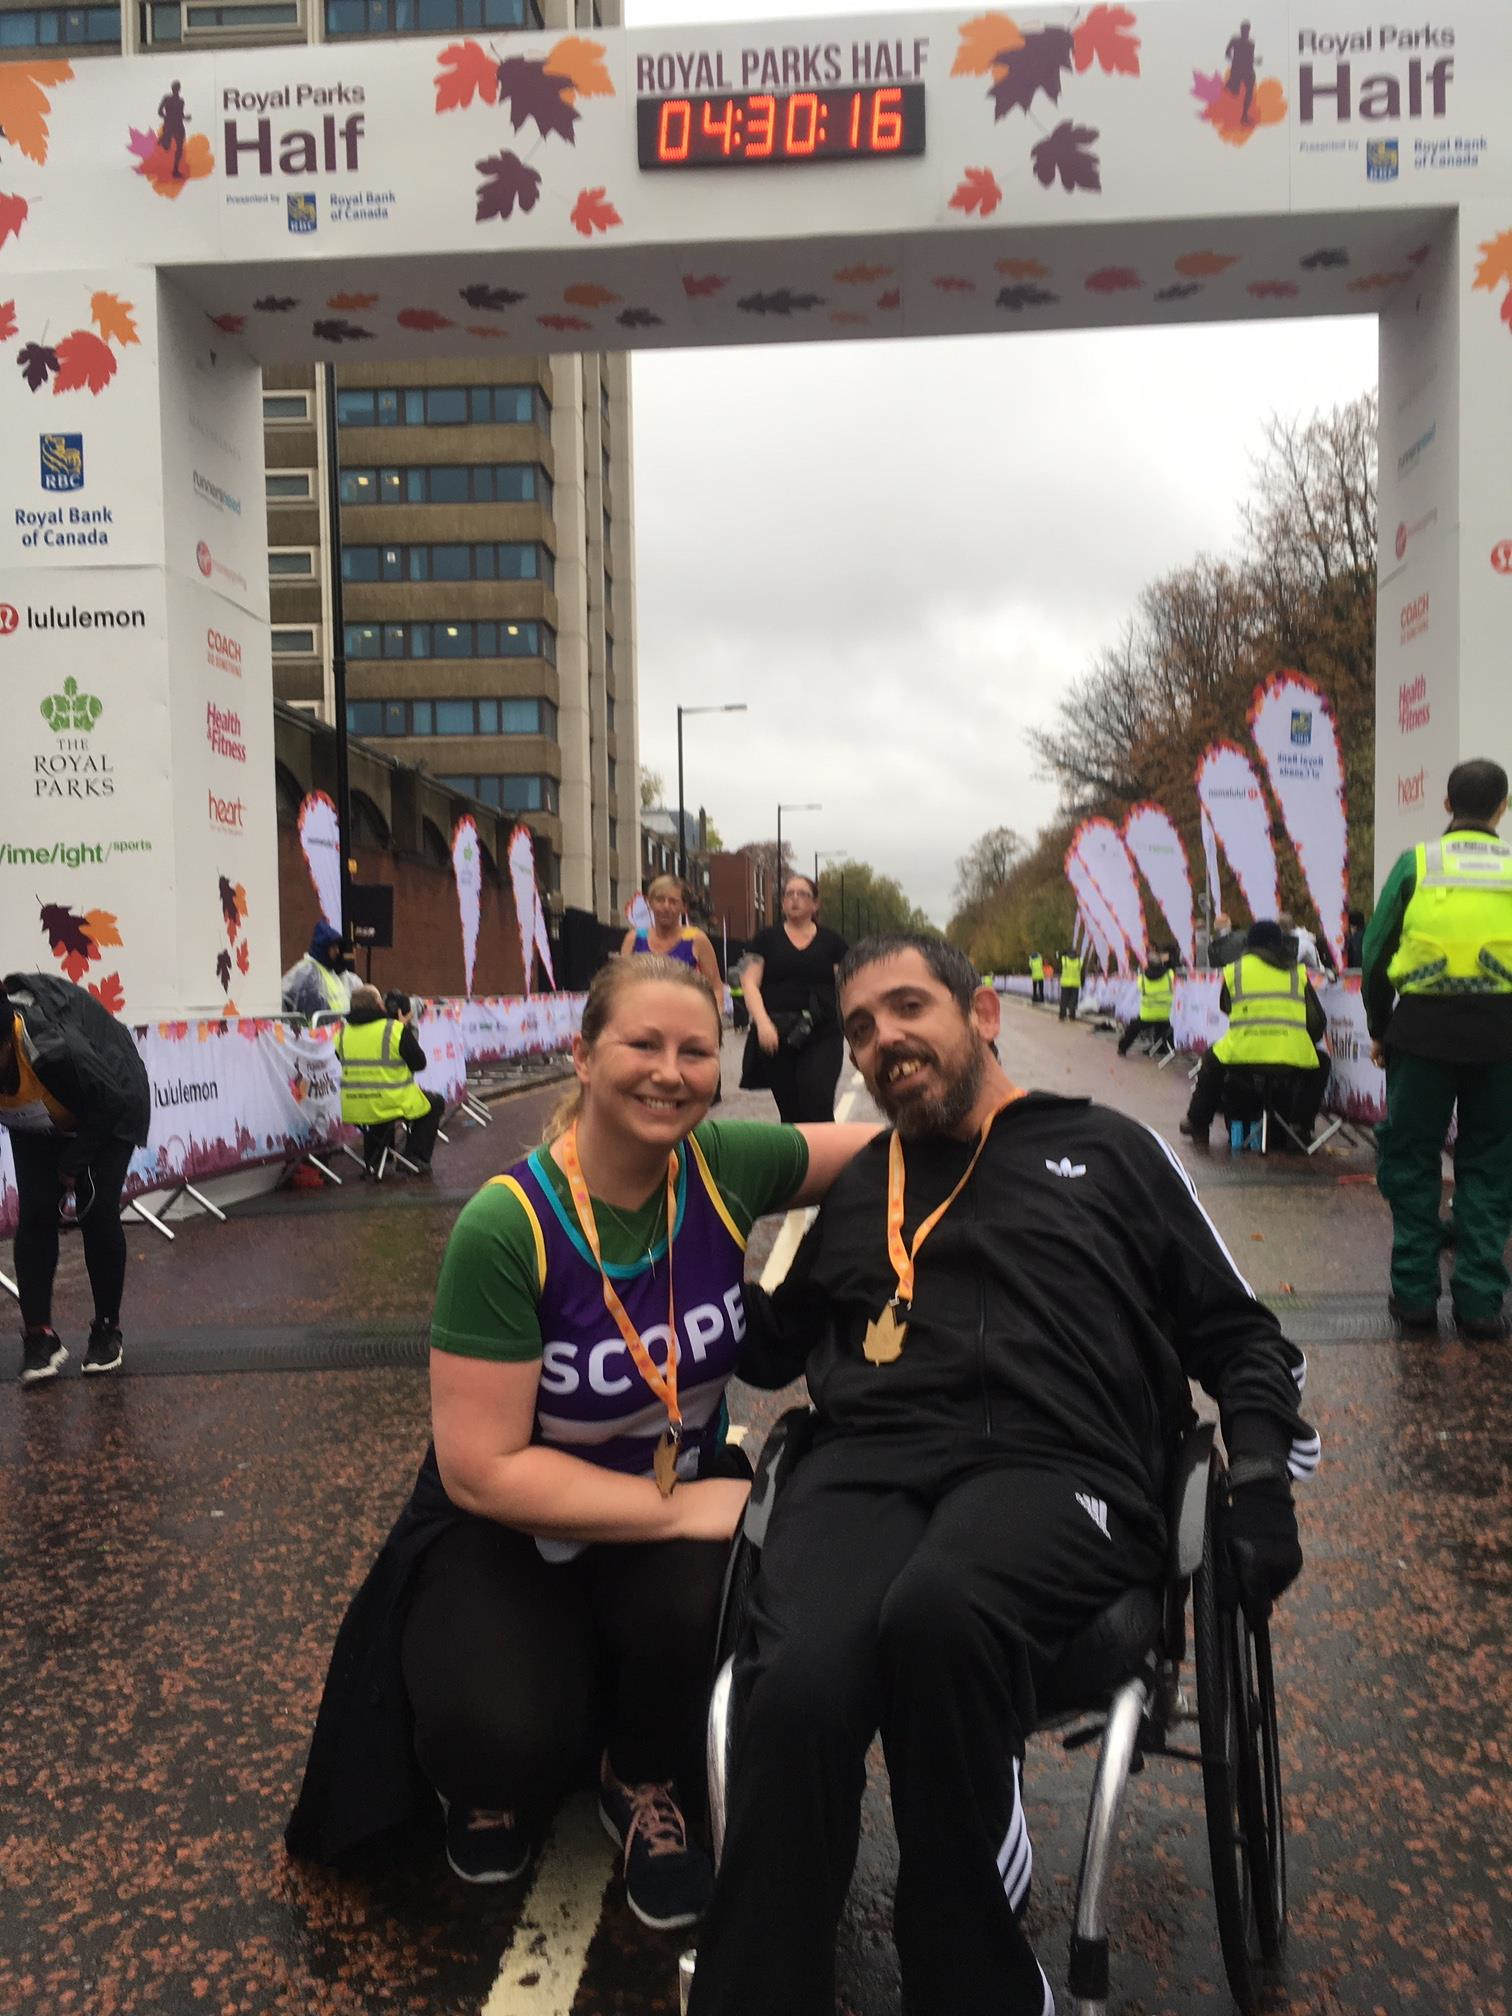 Man in a wheelchair and a woman with a Scope t-shirt on posing for a picture by the finish line